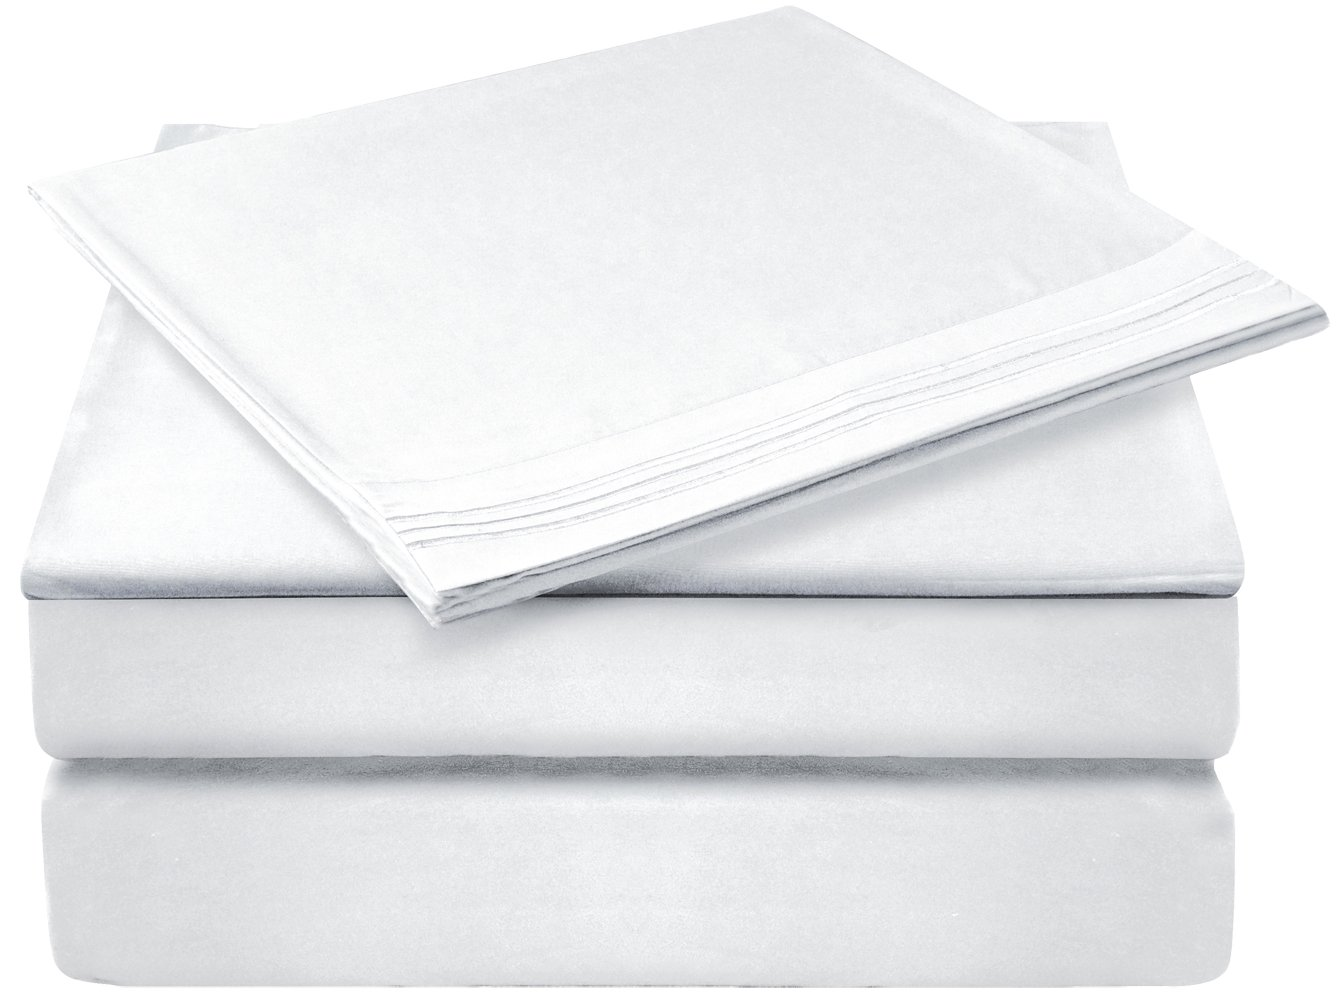 Glee&Cluster 4 piece Deep Pocket Bed Sheets Set Soft Brushed Microfiber Fade, Stain and Wrinkle Resistant, Hypoallergenic Sheet Bedding,1 Fitted Sheet,1 Bed Sheet and 2 Pillowcases (White,Queen)